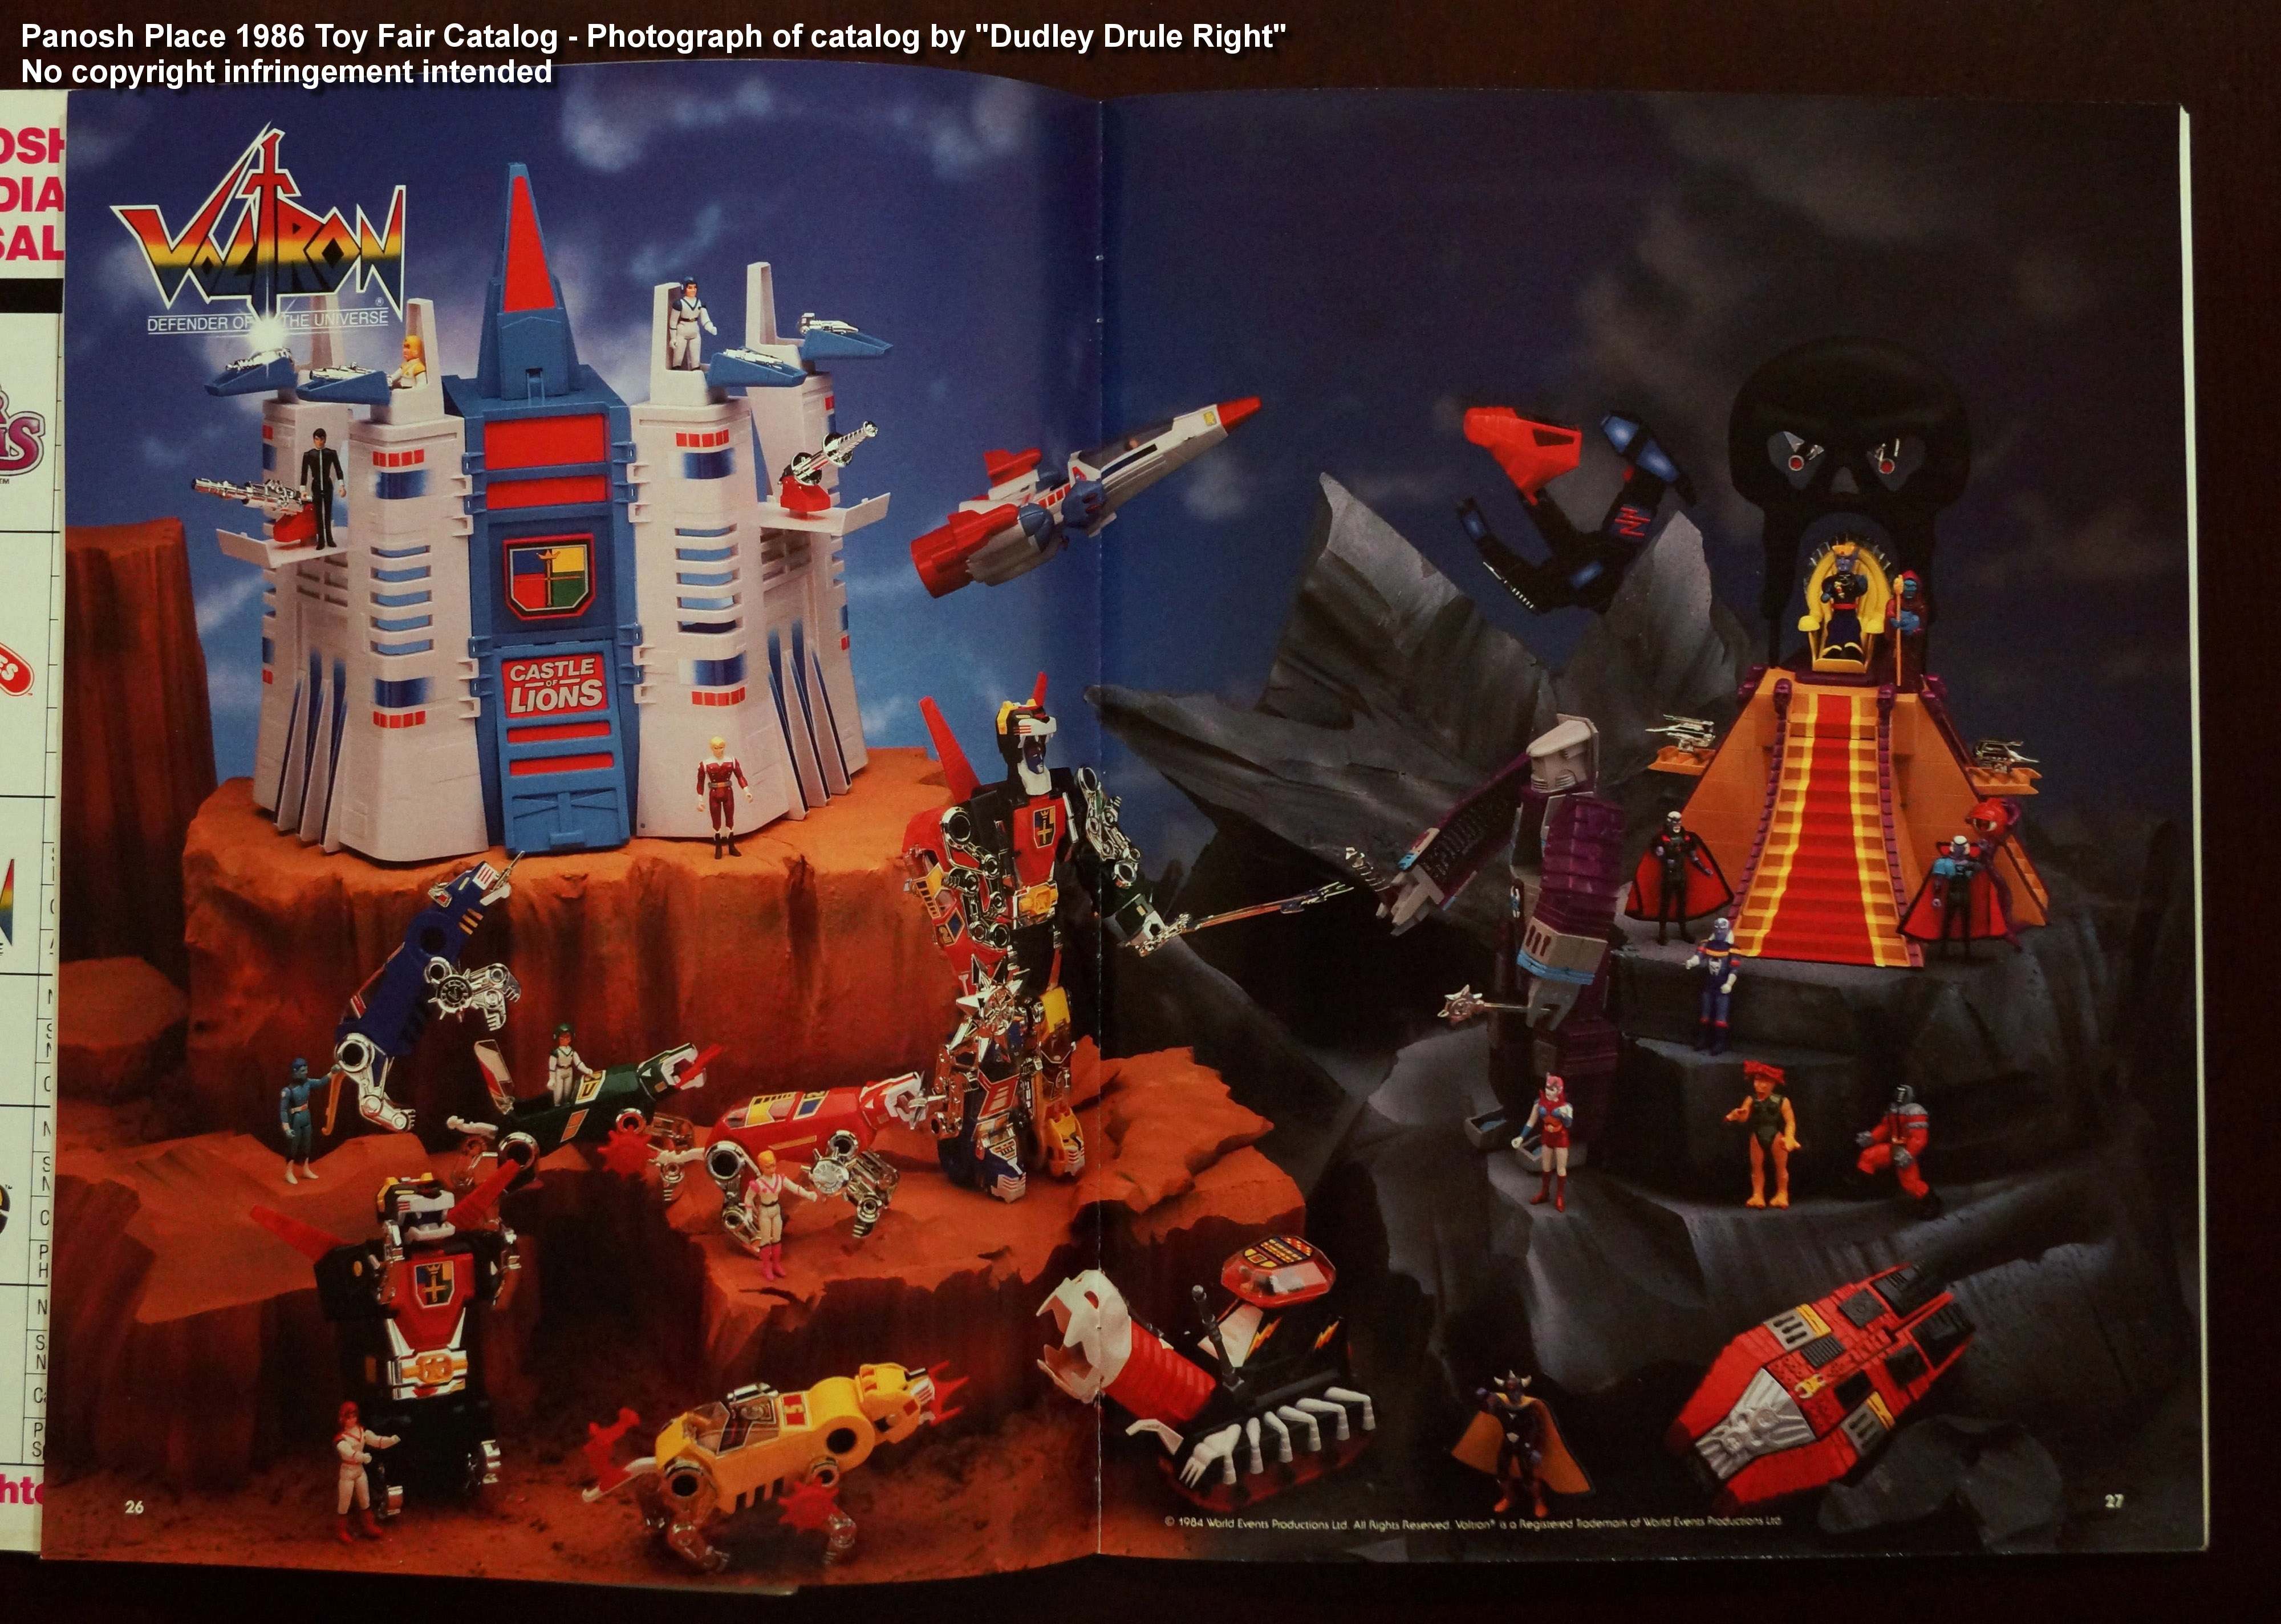 Panosh Place 1986 Toy Fair Catalog - Pages 26 and 27 (All 1986 Voltron toys)